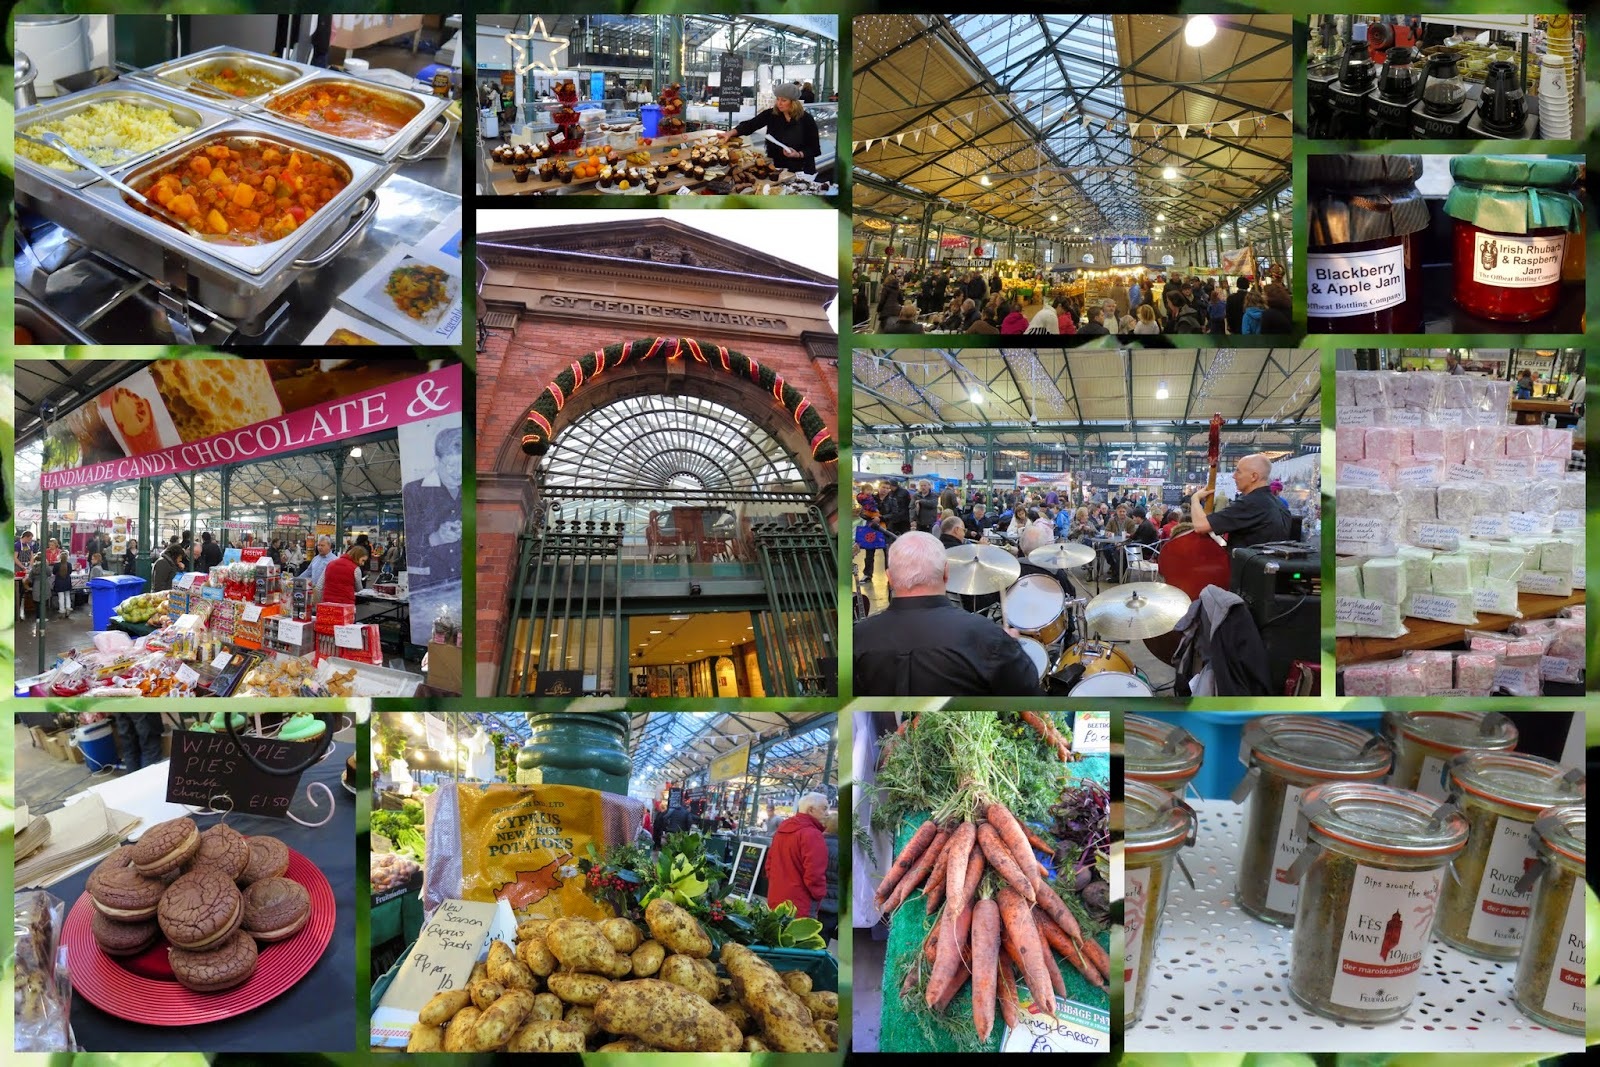 Best Food Hall in the UK: St. George's Market in Belfast